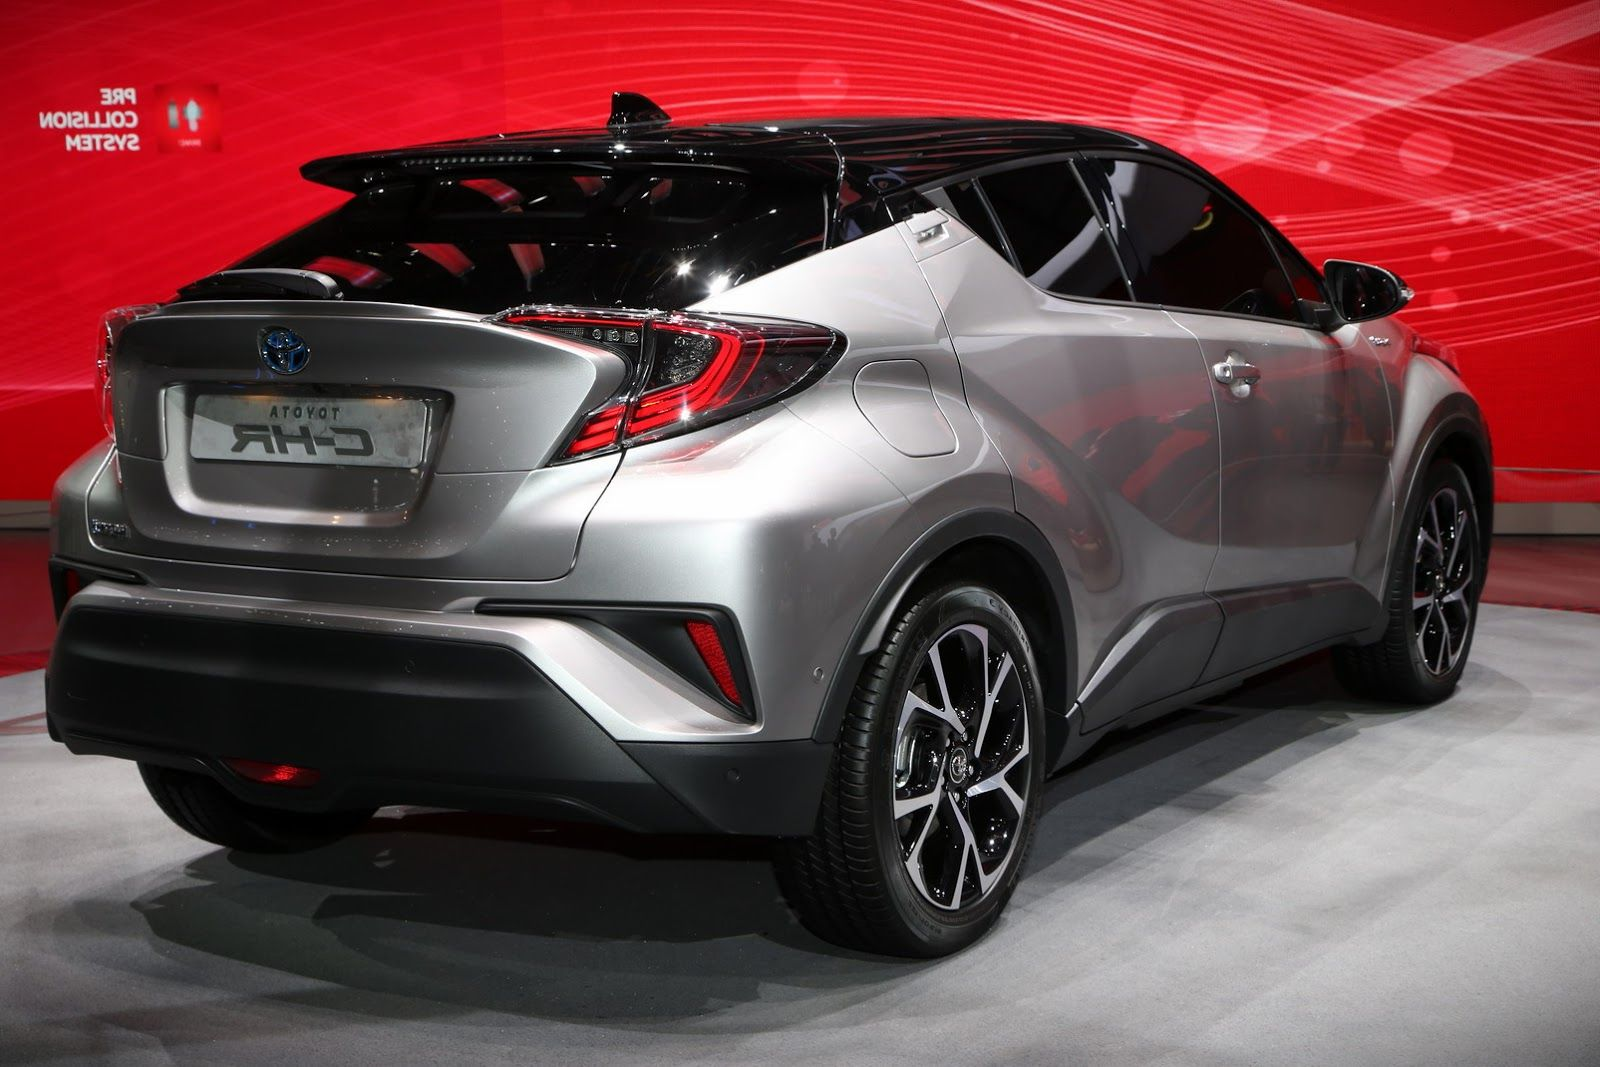 2018 toyota chr usa msrp new suv price new suv price. Black Bedroom Furniture Sets. Home Design Ideas